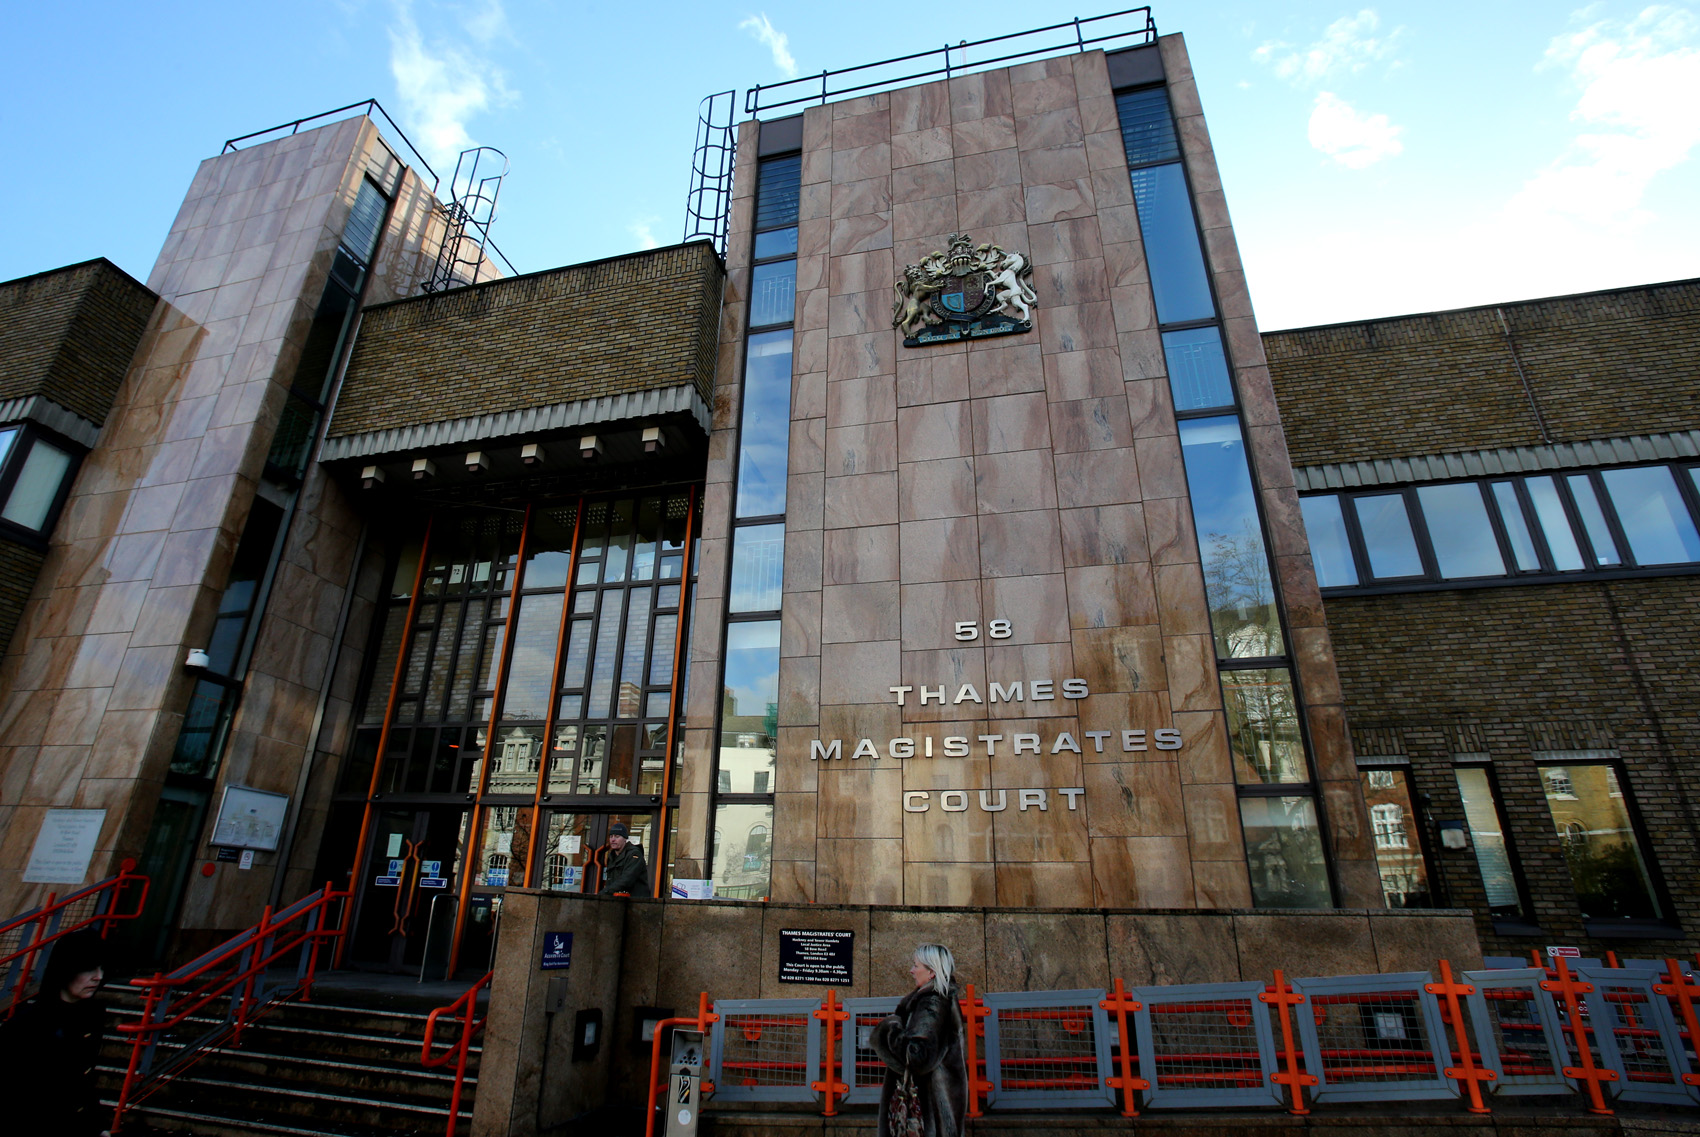 Thames Magistrates' Court.